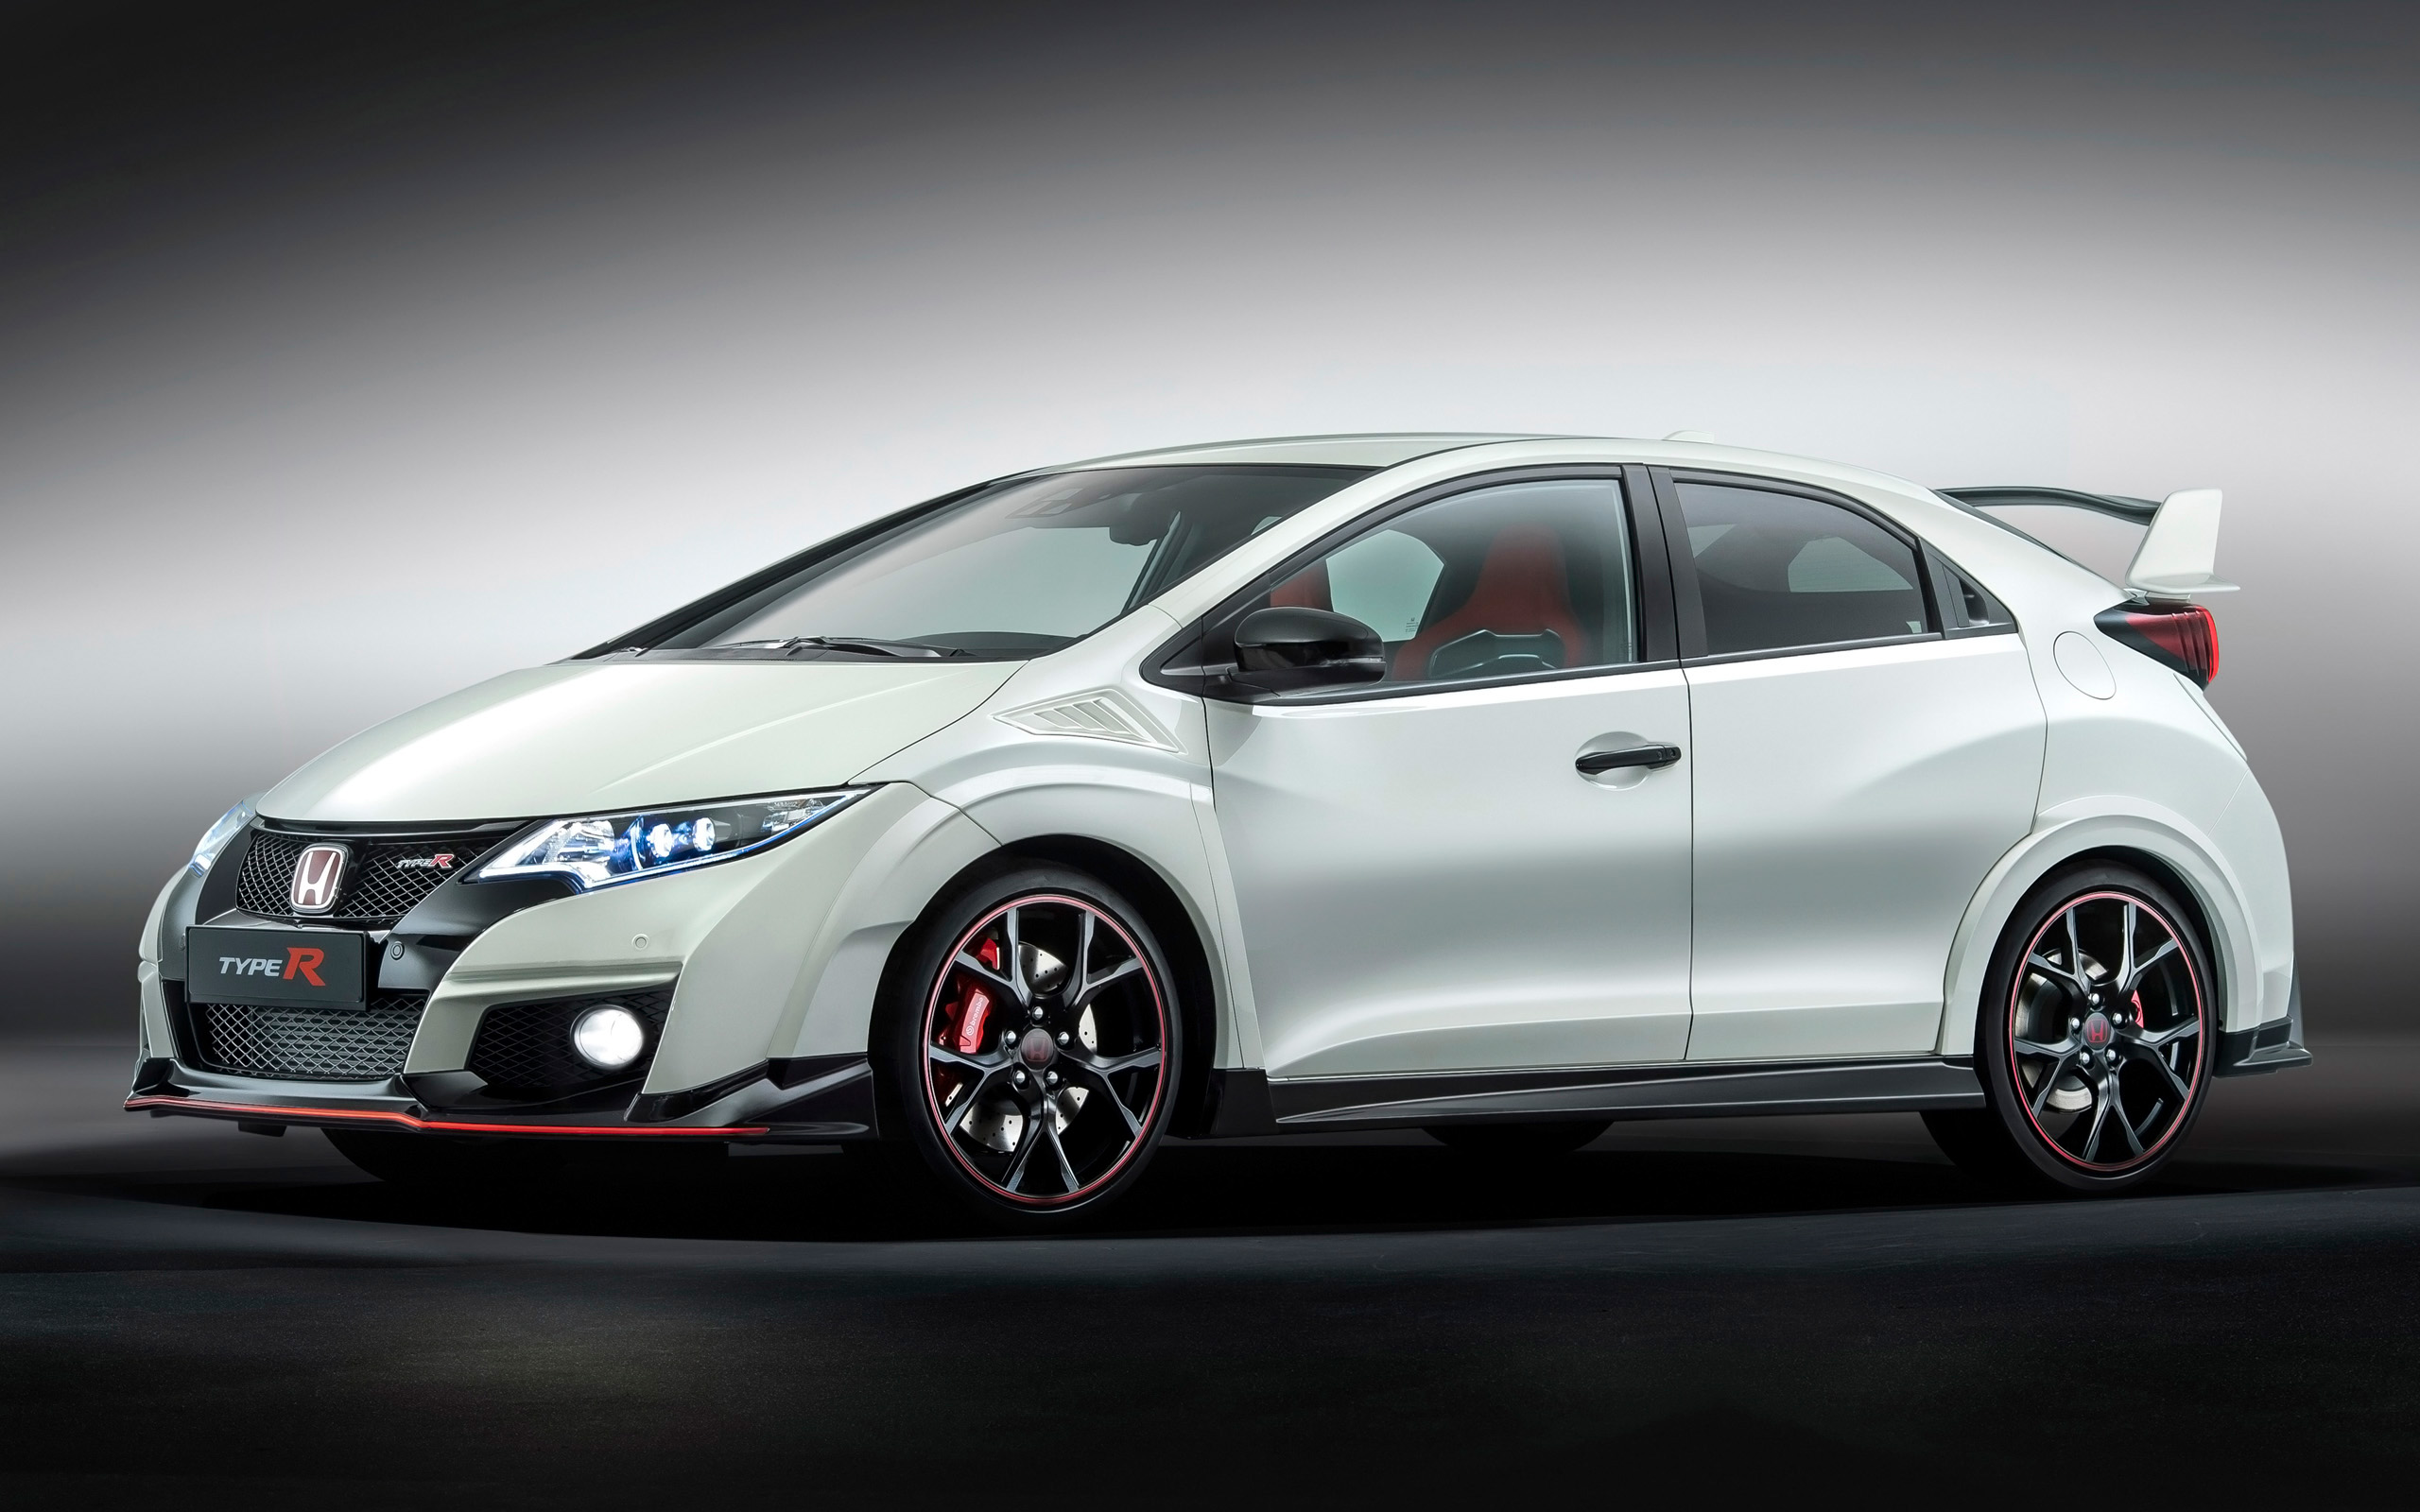 2015 honda civic type r wallpaper hd car wallpapers. Black Bedroom Furniture Sets. Home Design Ideas